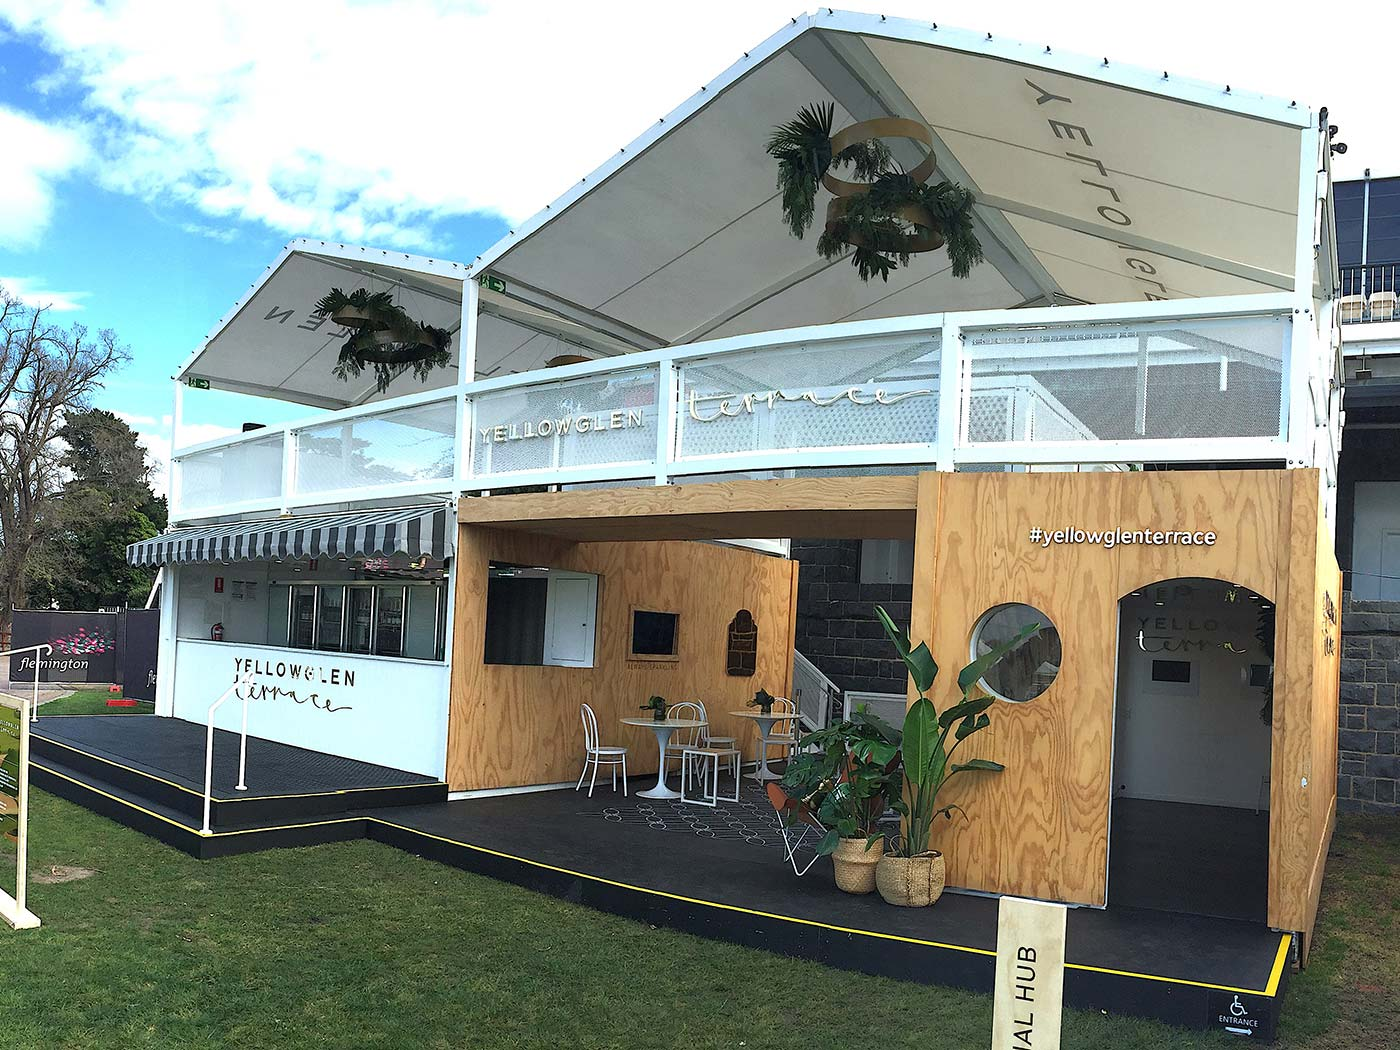 Yellowglen-Terrace-Shipping-Container-Hospitality-Activation-4